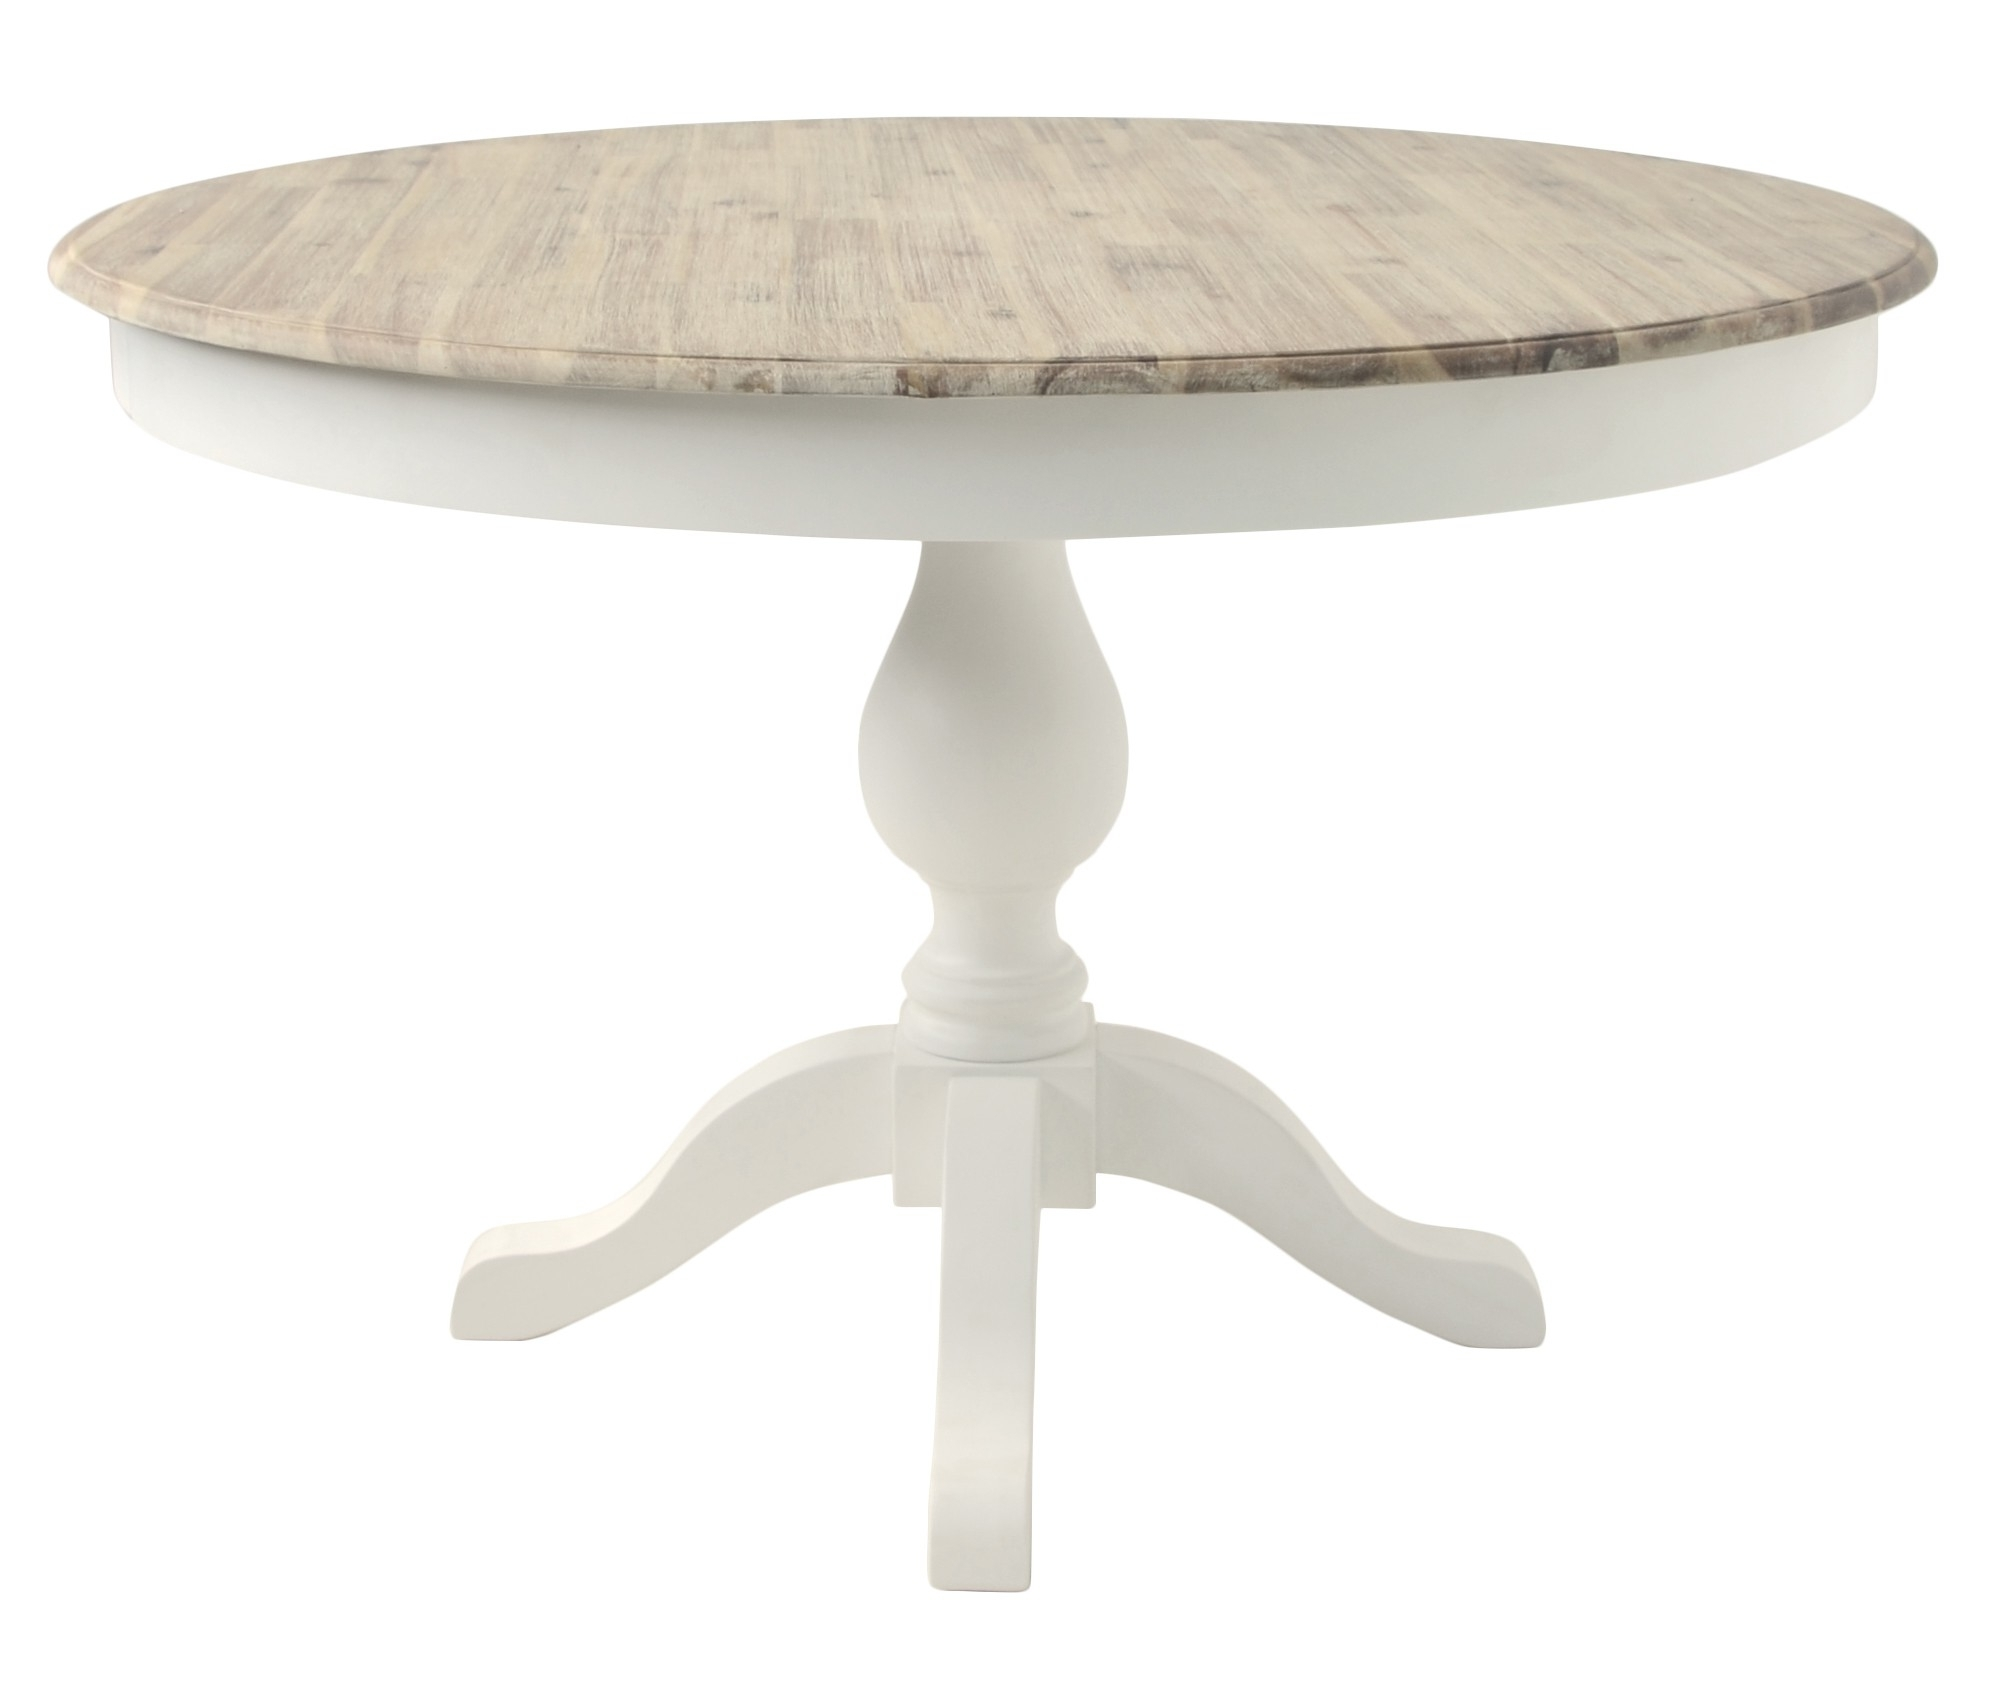 2018 White Circle Dining Tables Intended For Florence Large Pedestal Round Dining Table (120Cm) – White (Gallery 8 of 25)